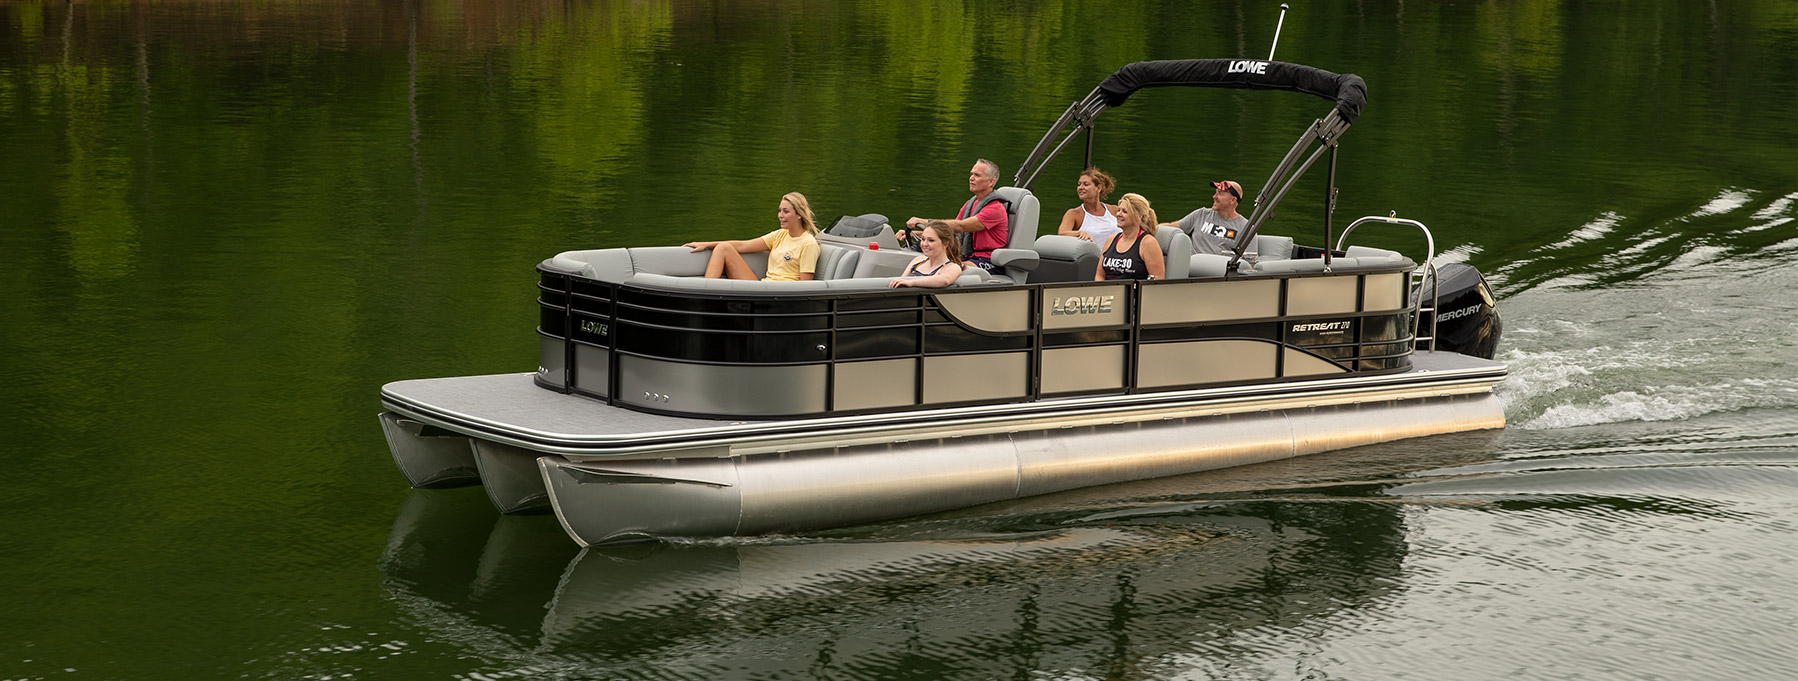 Pontoon Boats With Bathroom. pontoon boats with bathroom for sale   Bathroom Design Ideas